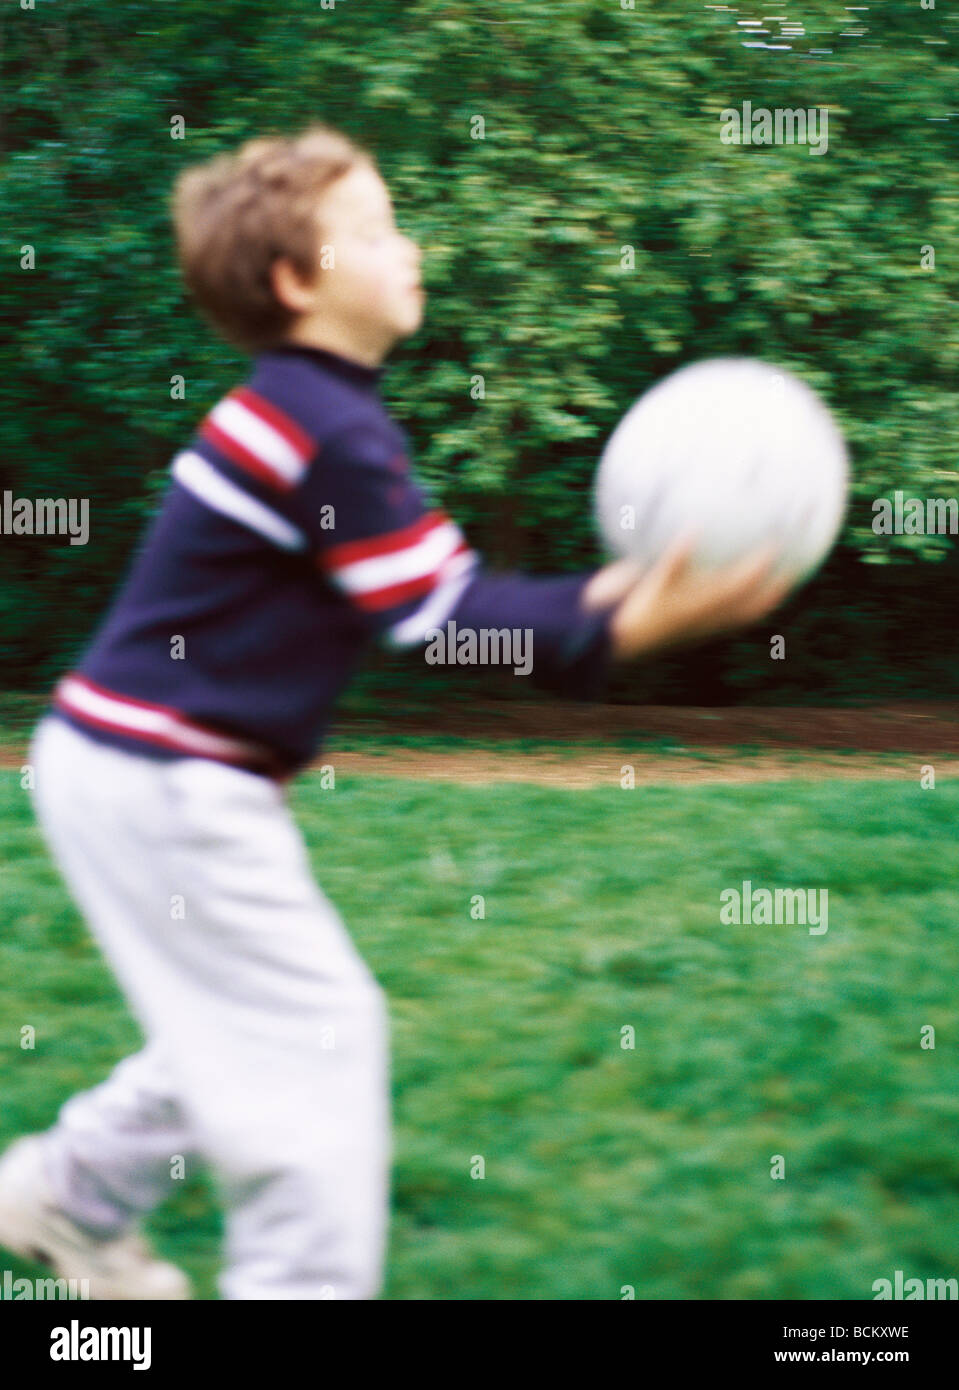 Child Catching Ball Blurred Side View Stock Photo